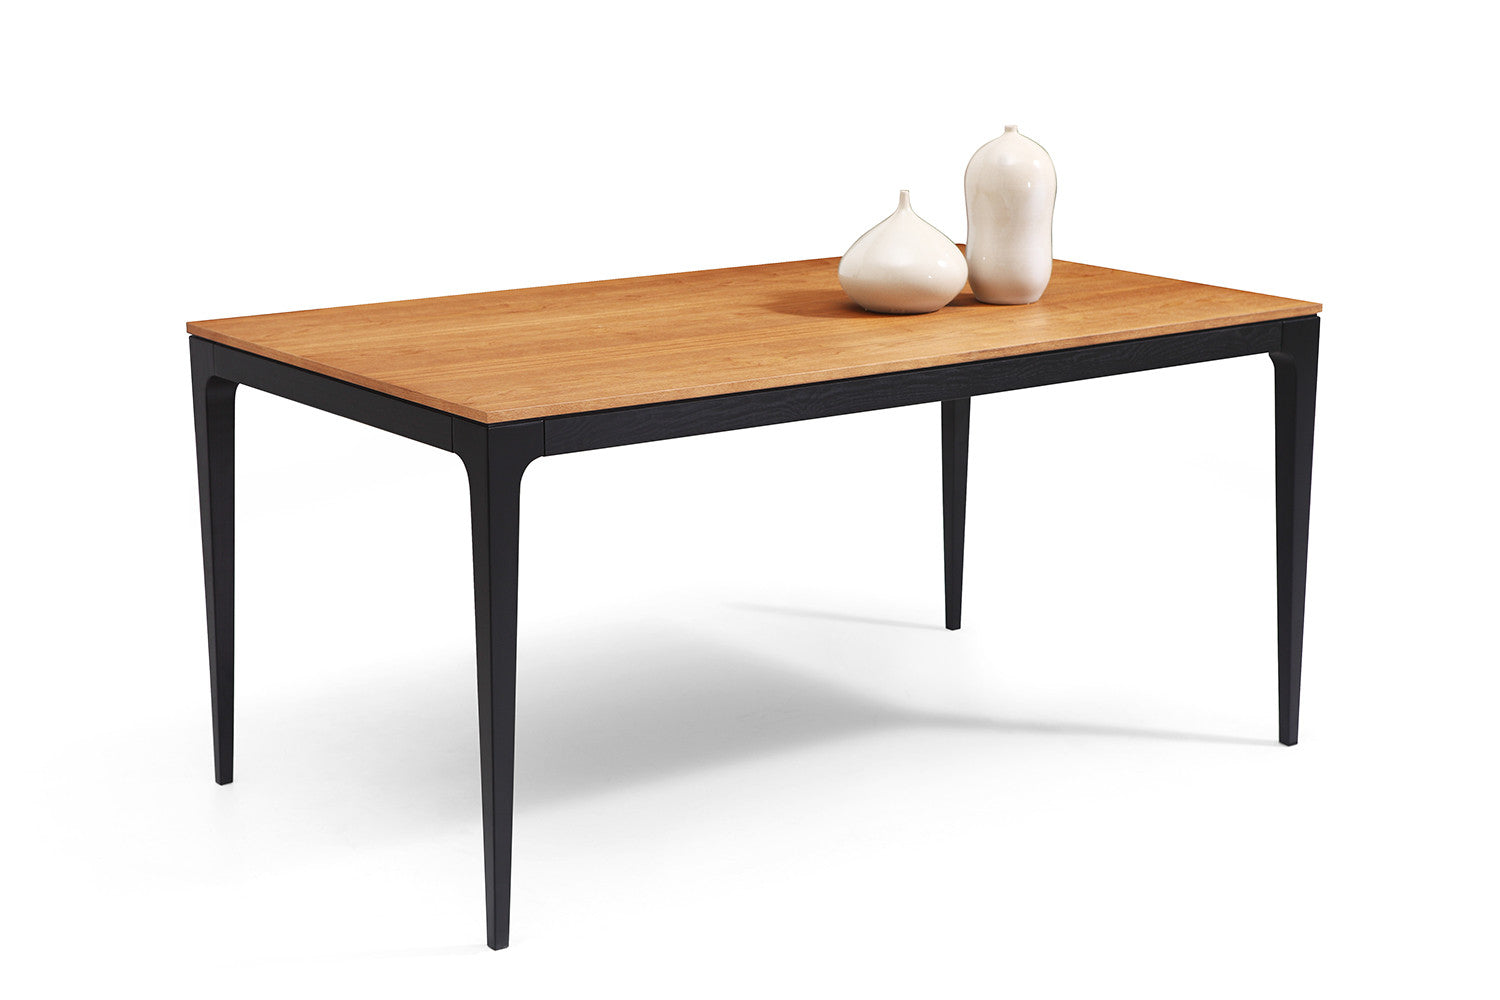 Table a manger design bois for Table salle a manger qui se deploie